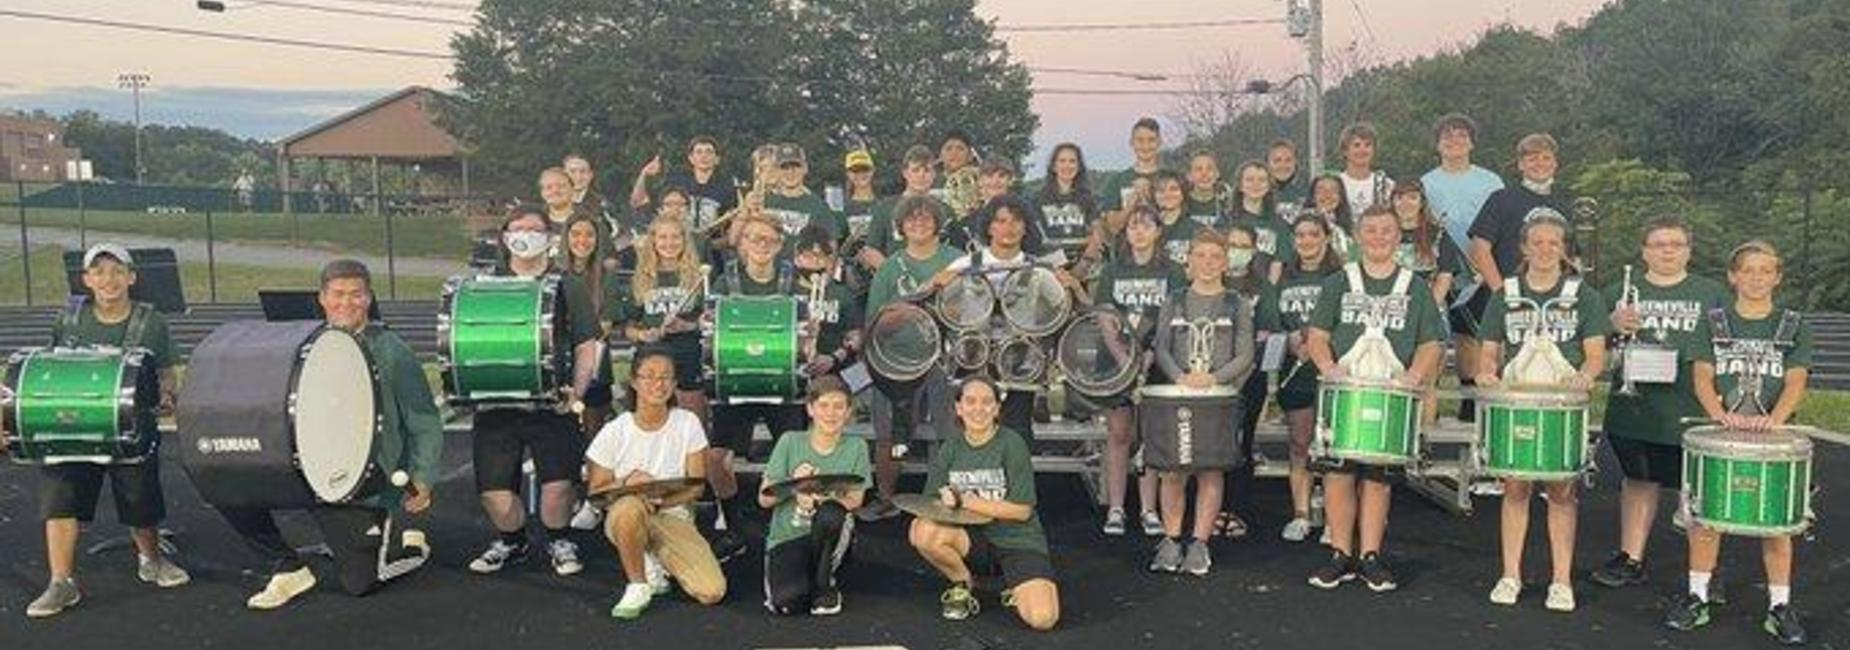 a picture of the GMS band